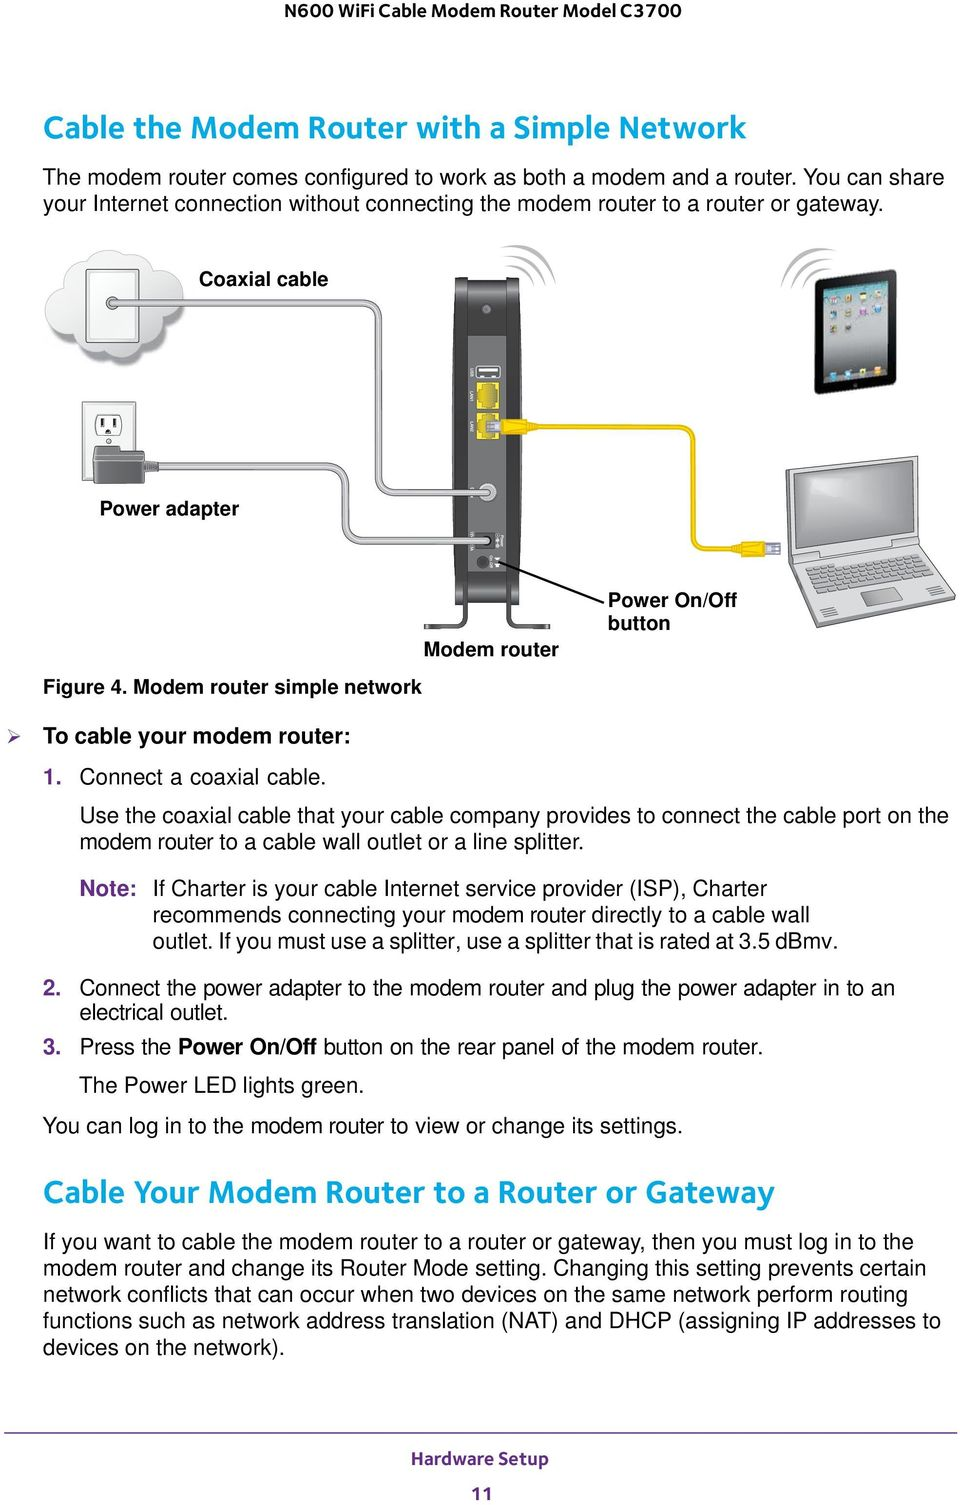 N600 WiFi Cable Modem Router Model C3700 User Manual - PDF